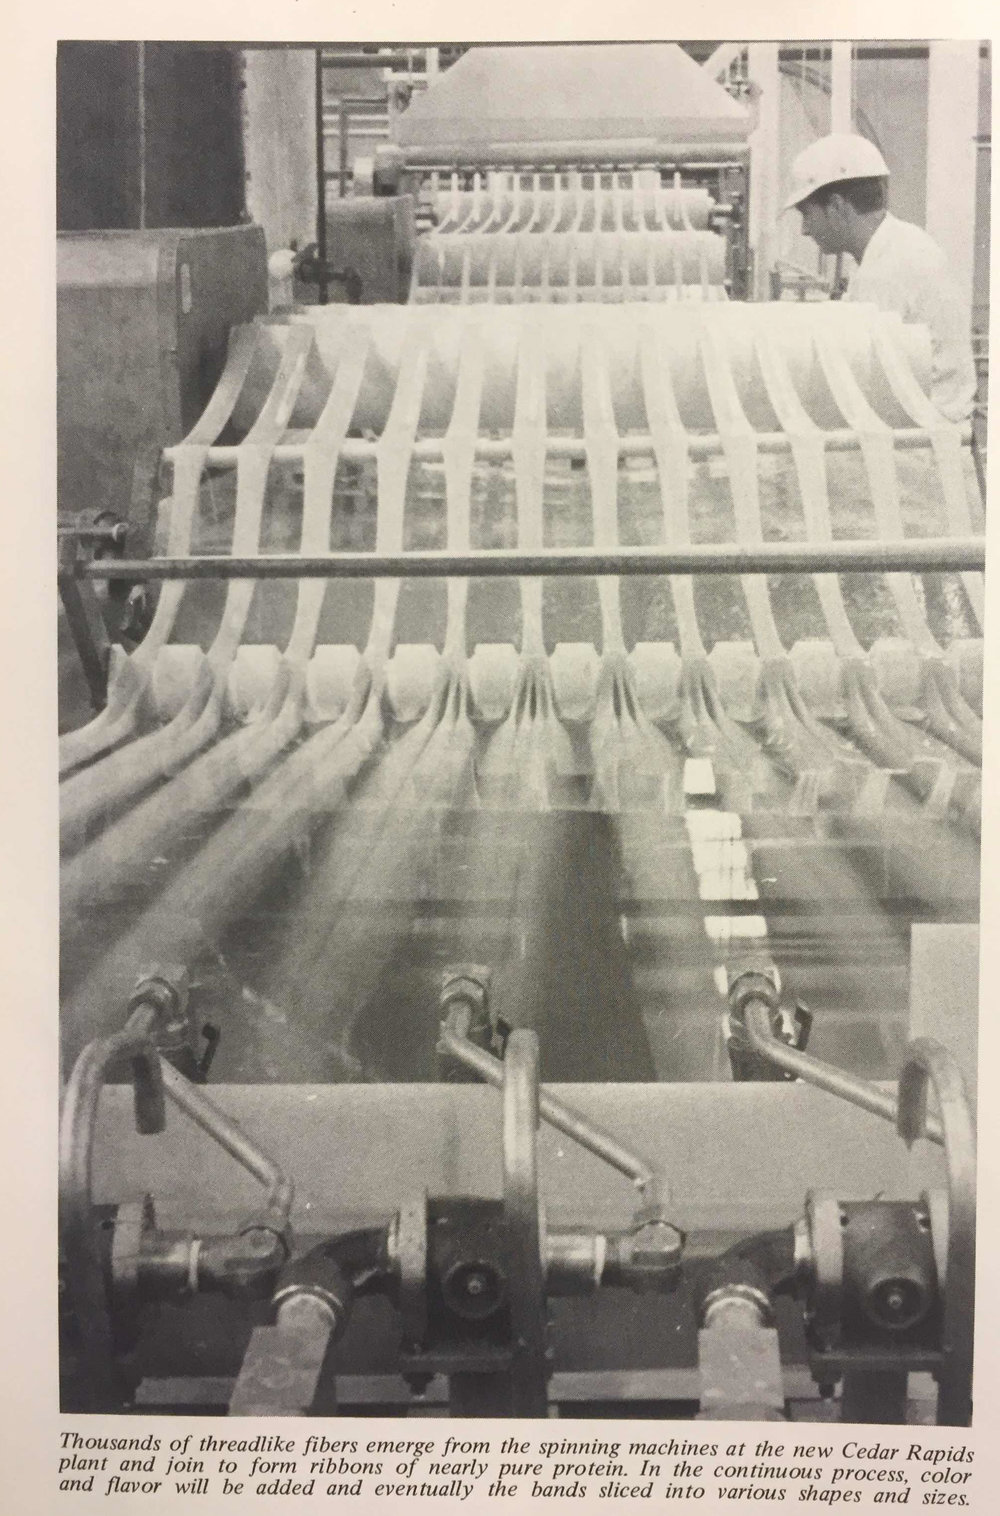 General Mills' protein-spinning plant in Cedar Rapids. Image source:  Progress Thru Research,  vol 24, no 2, 1970-1.